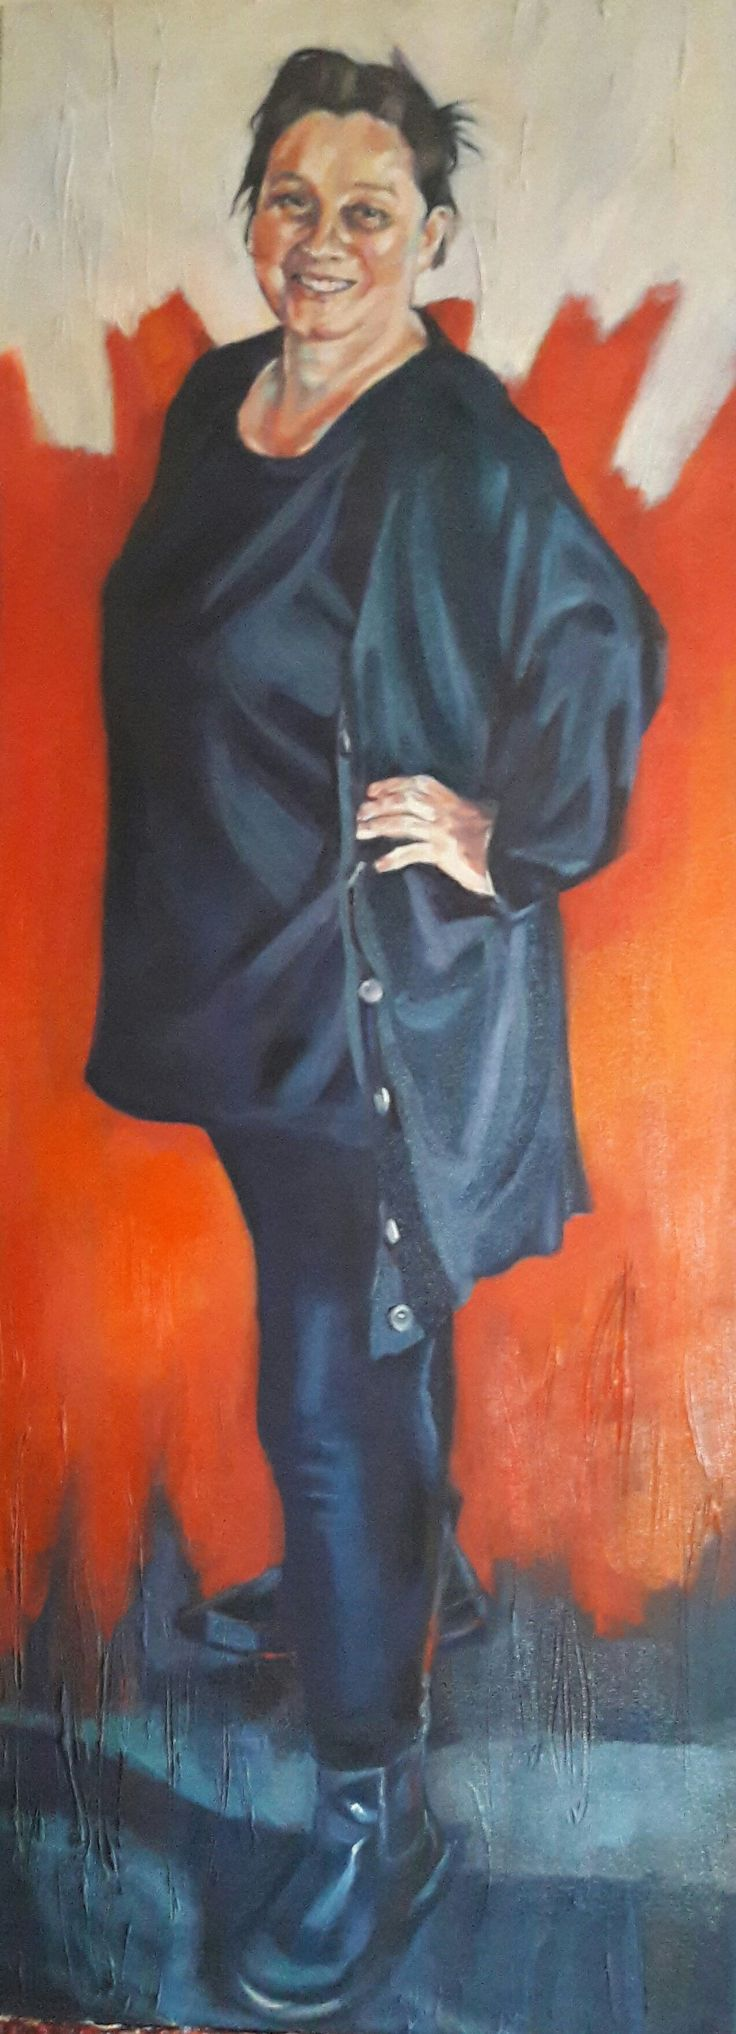 Here I am, this is me - Self portrait oil on canvas